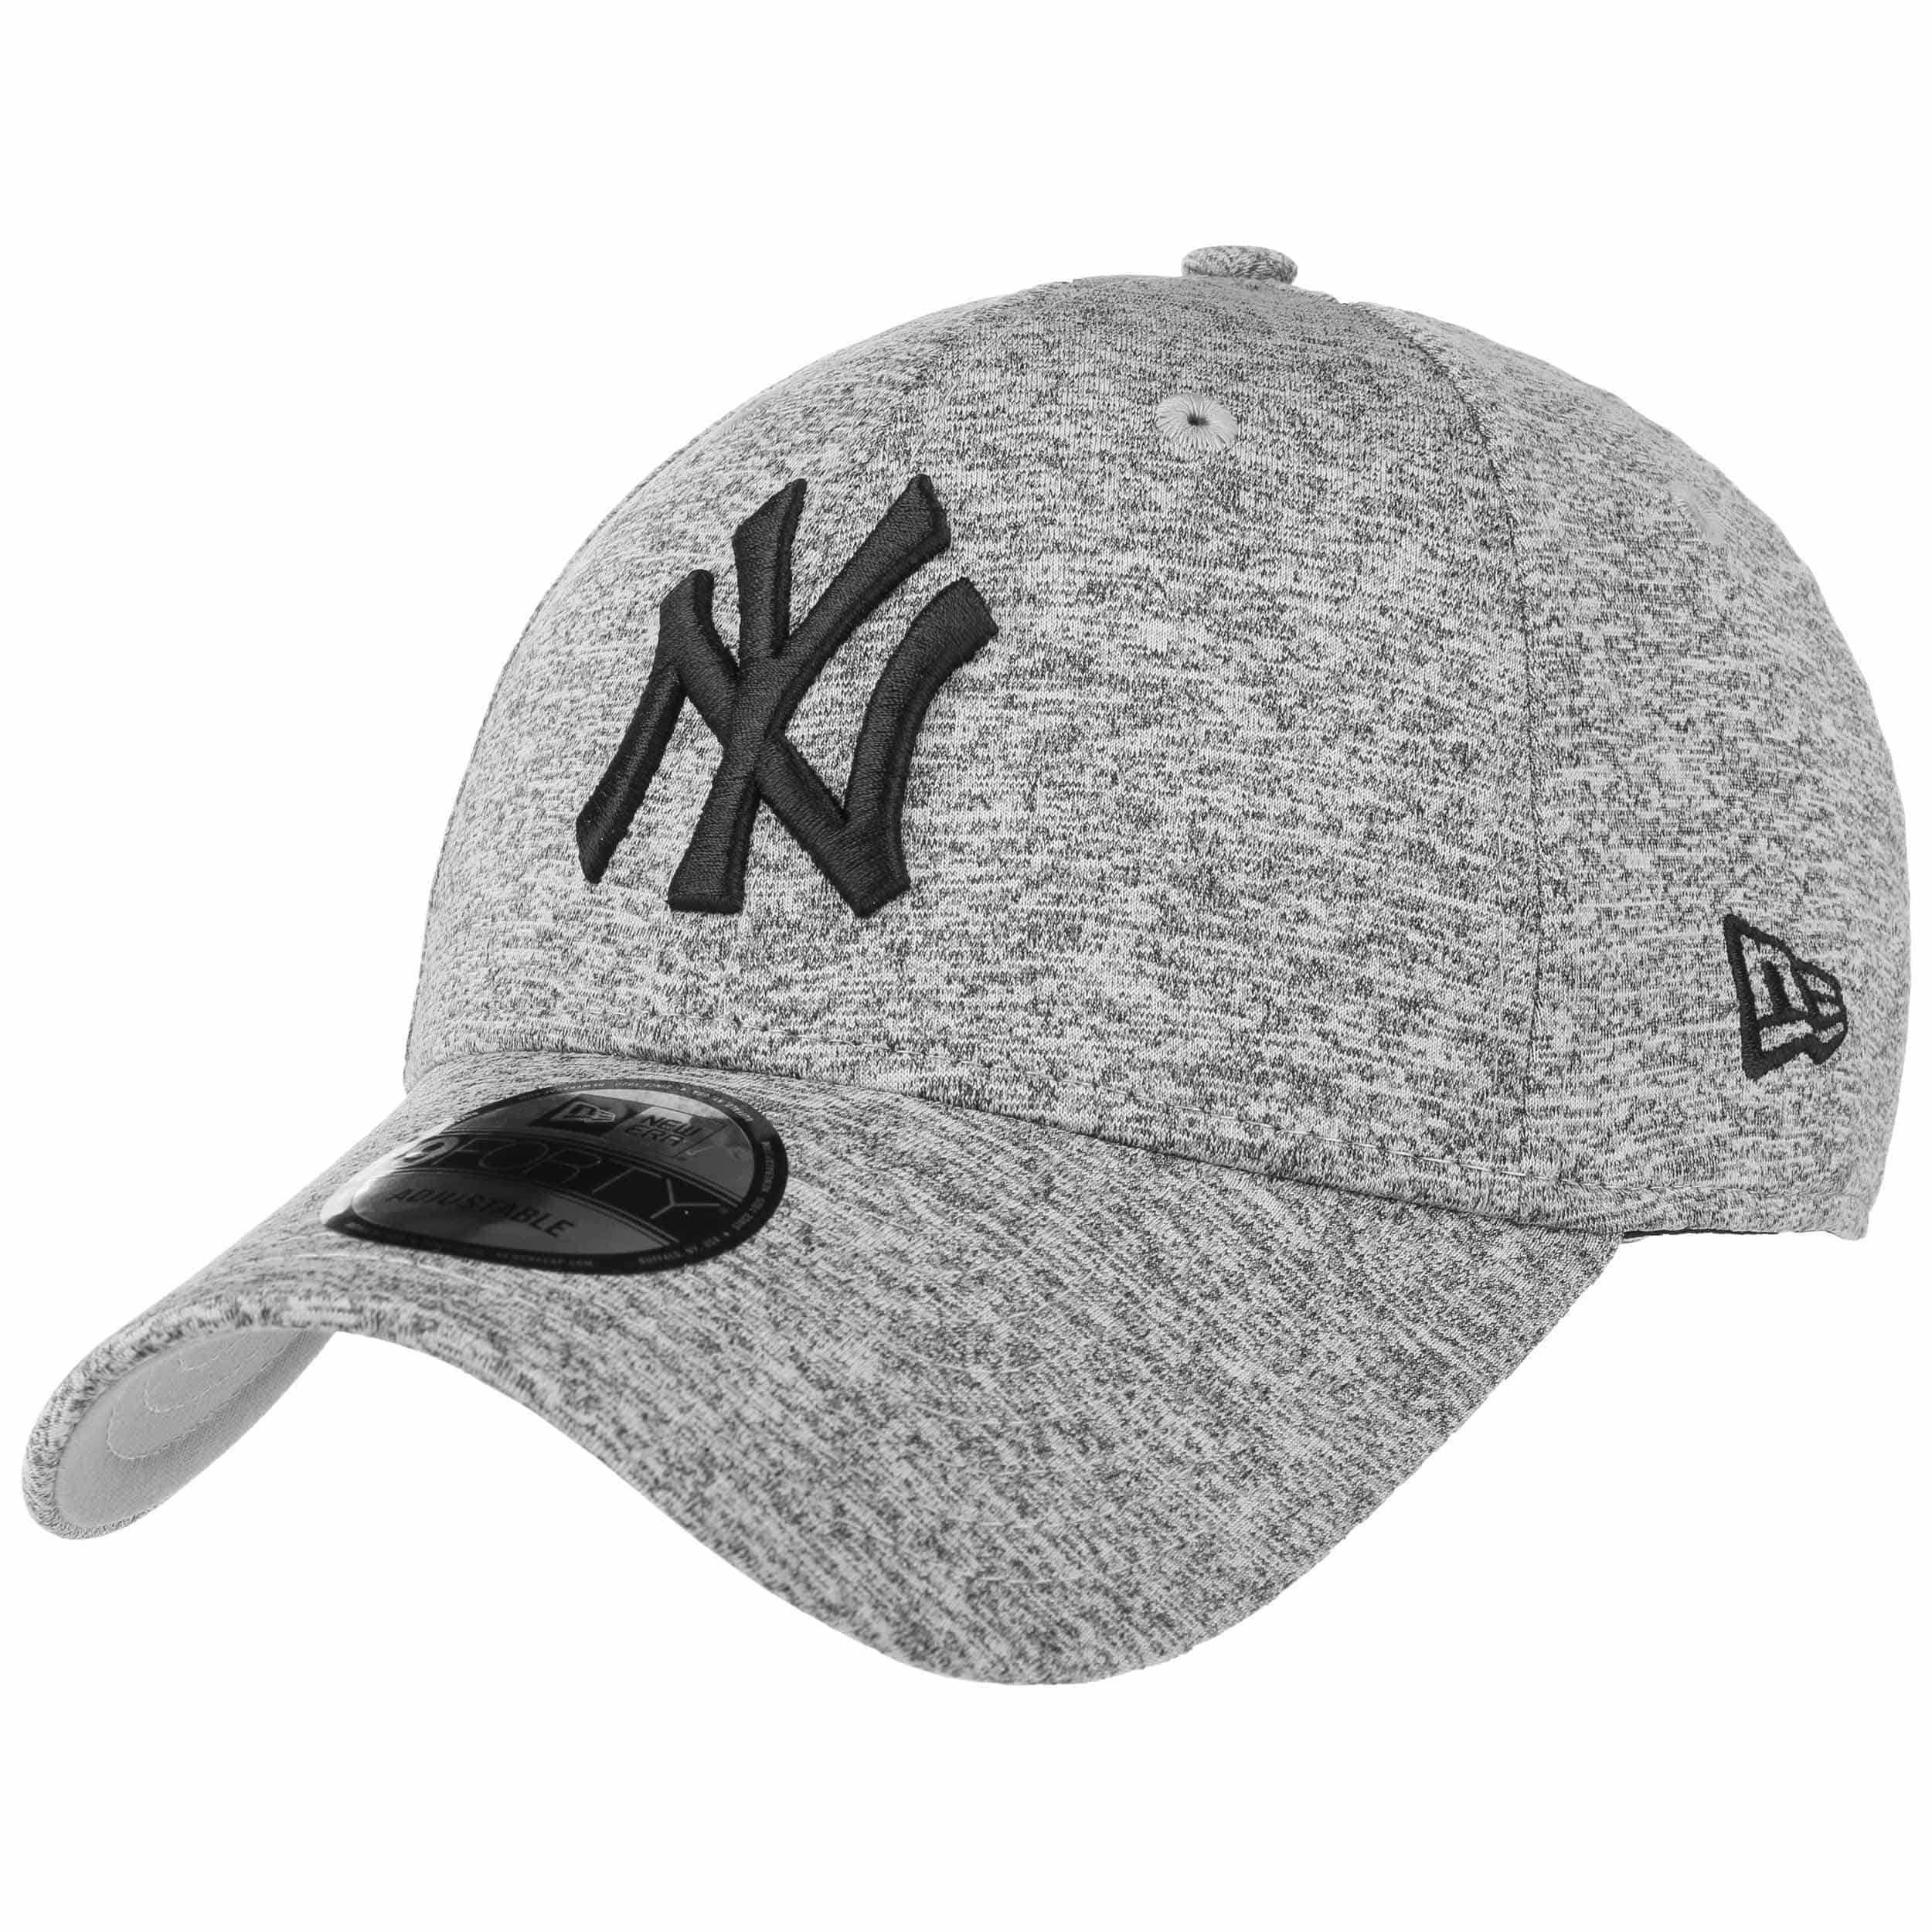 97ff05df828 ... low cost 9forty tech jersey yankees cap by new era 6 22ea5 44a27